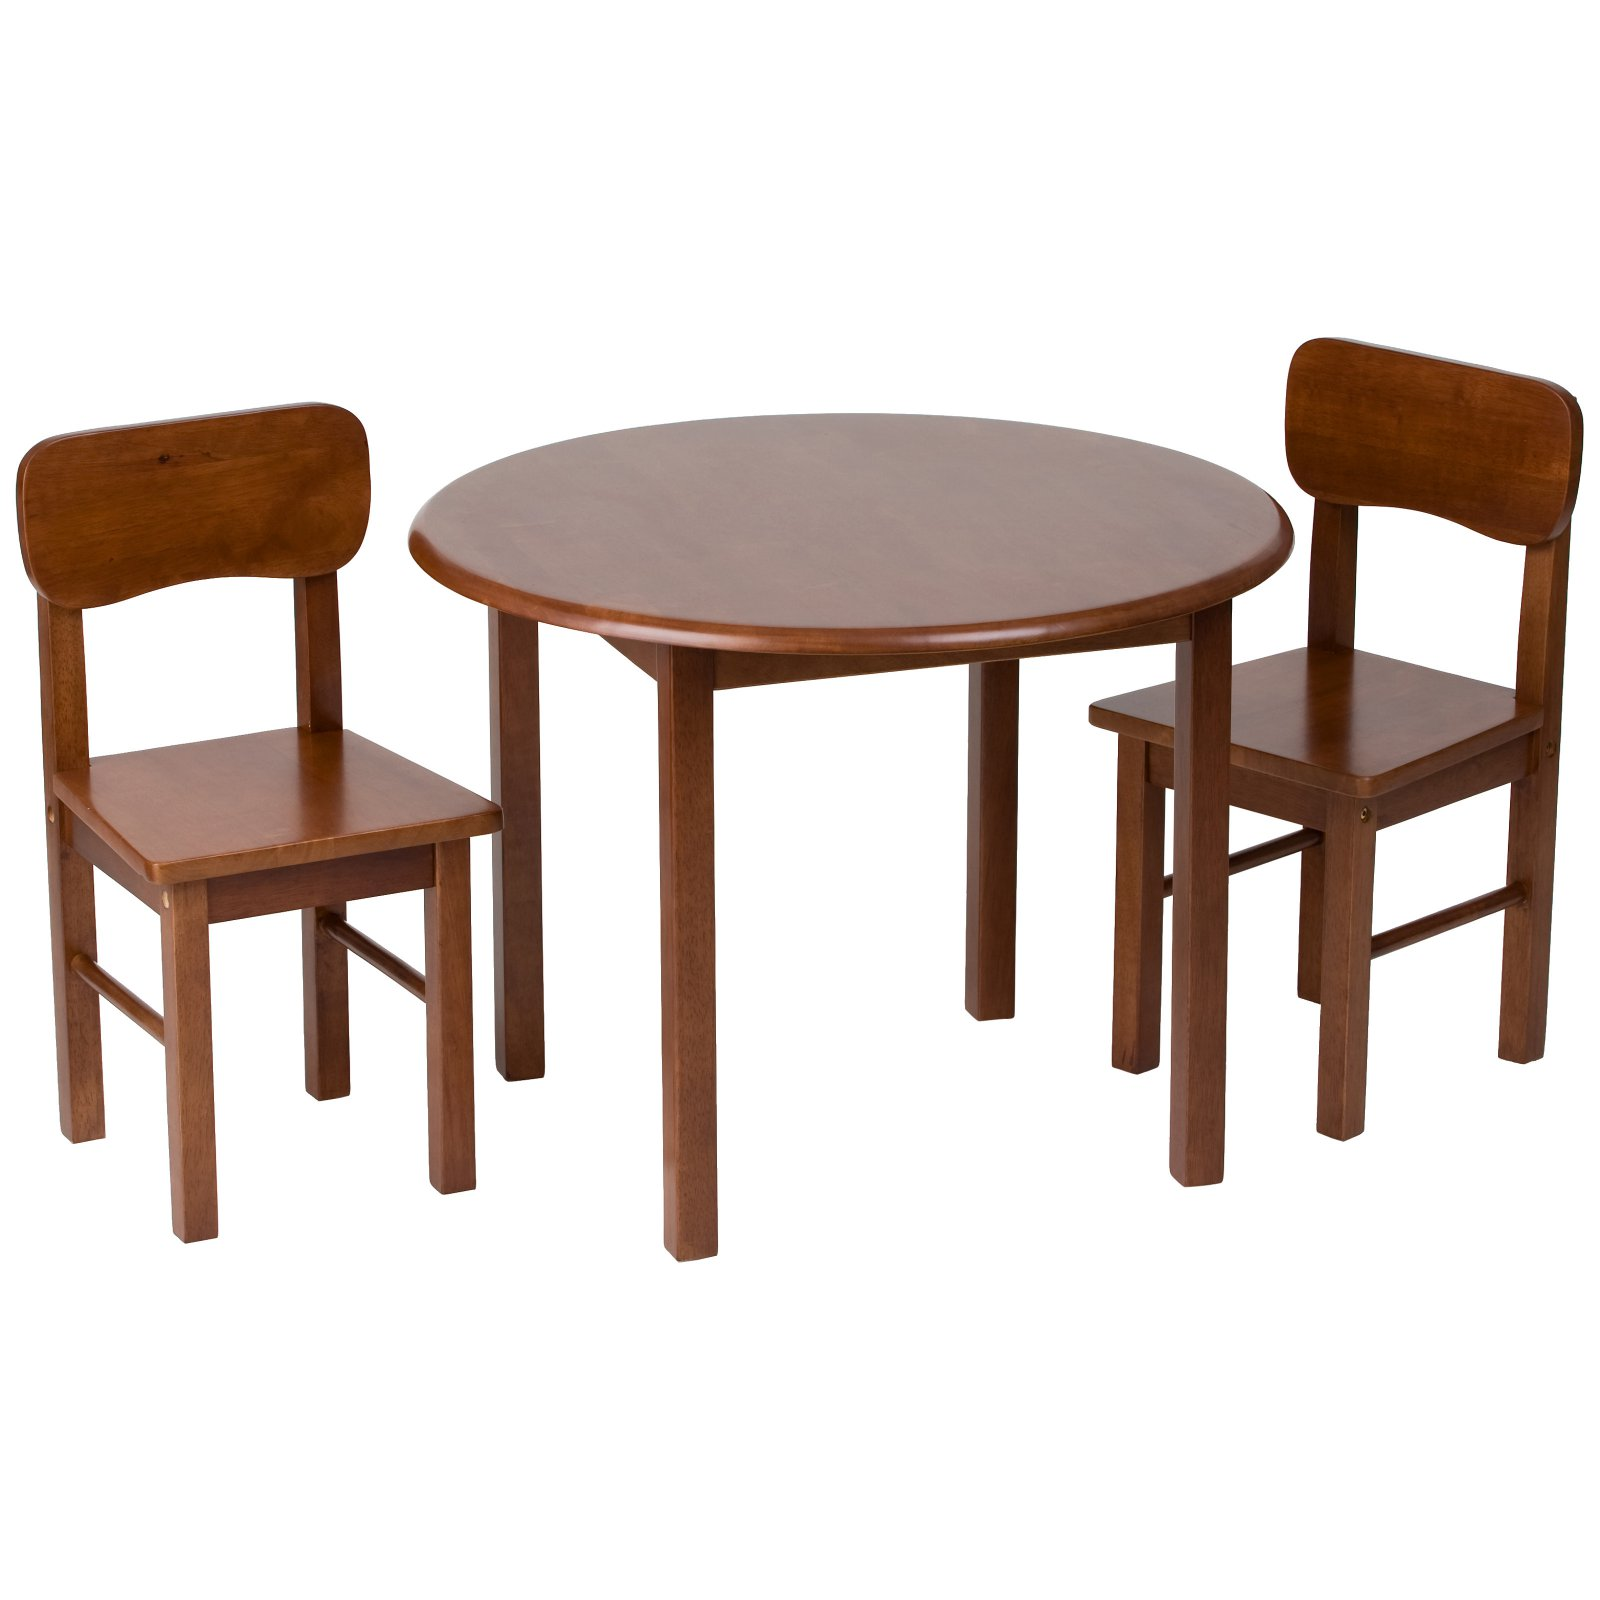 Gift Mark Round 3 Piece Table and Chair Set